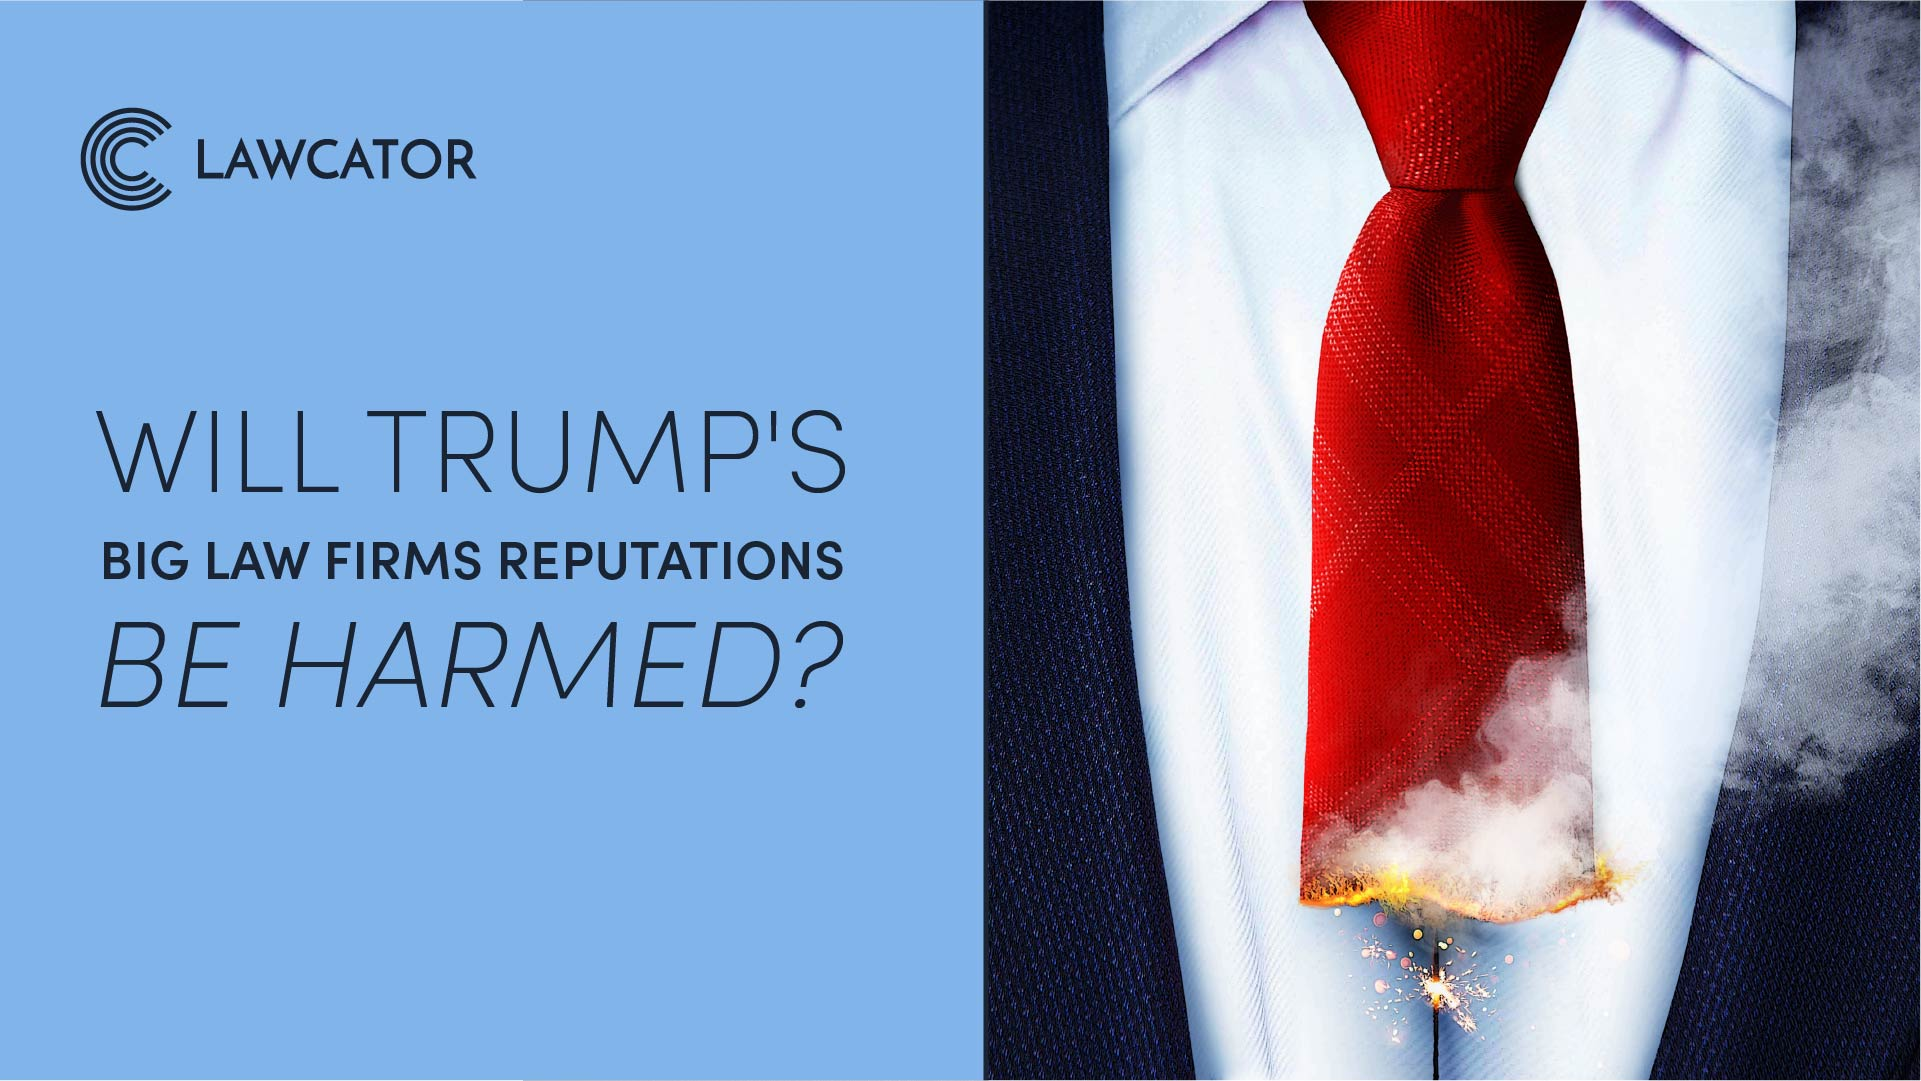 Will Trump's Big Law Firms Reputations Be Harmed?